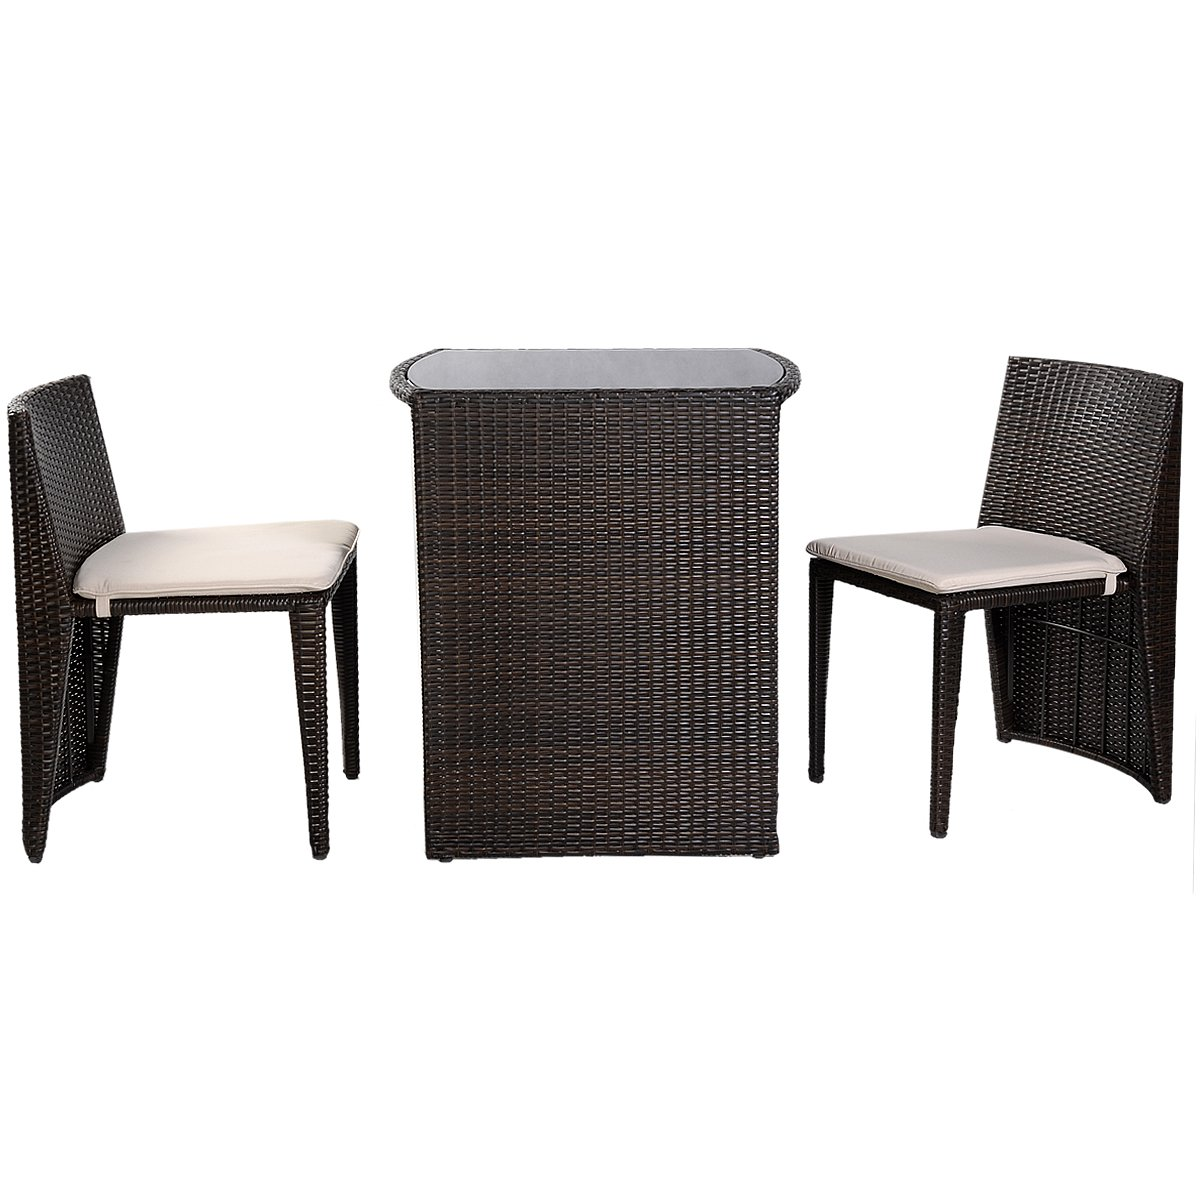 gartenm bel rattan set lounge set polyrattan sitzgruppe. Black Bedroom Furniture Sets. Home Design Ideas